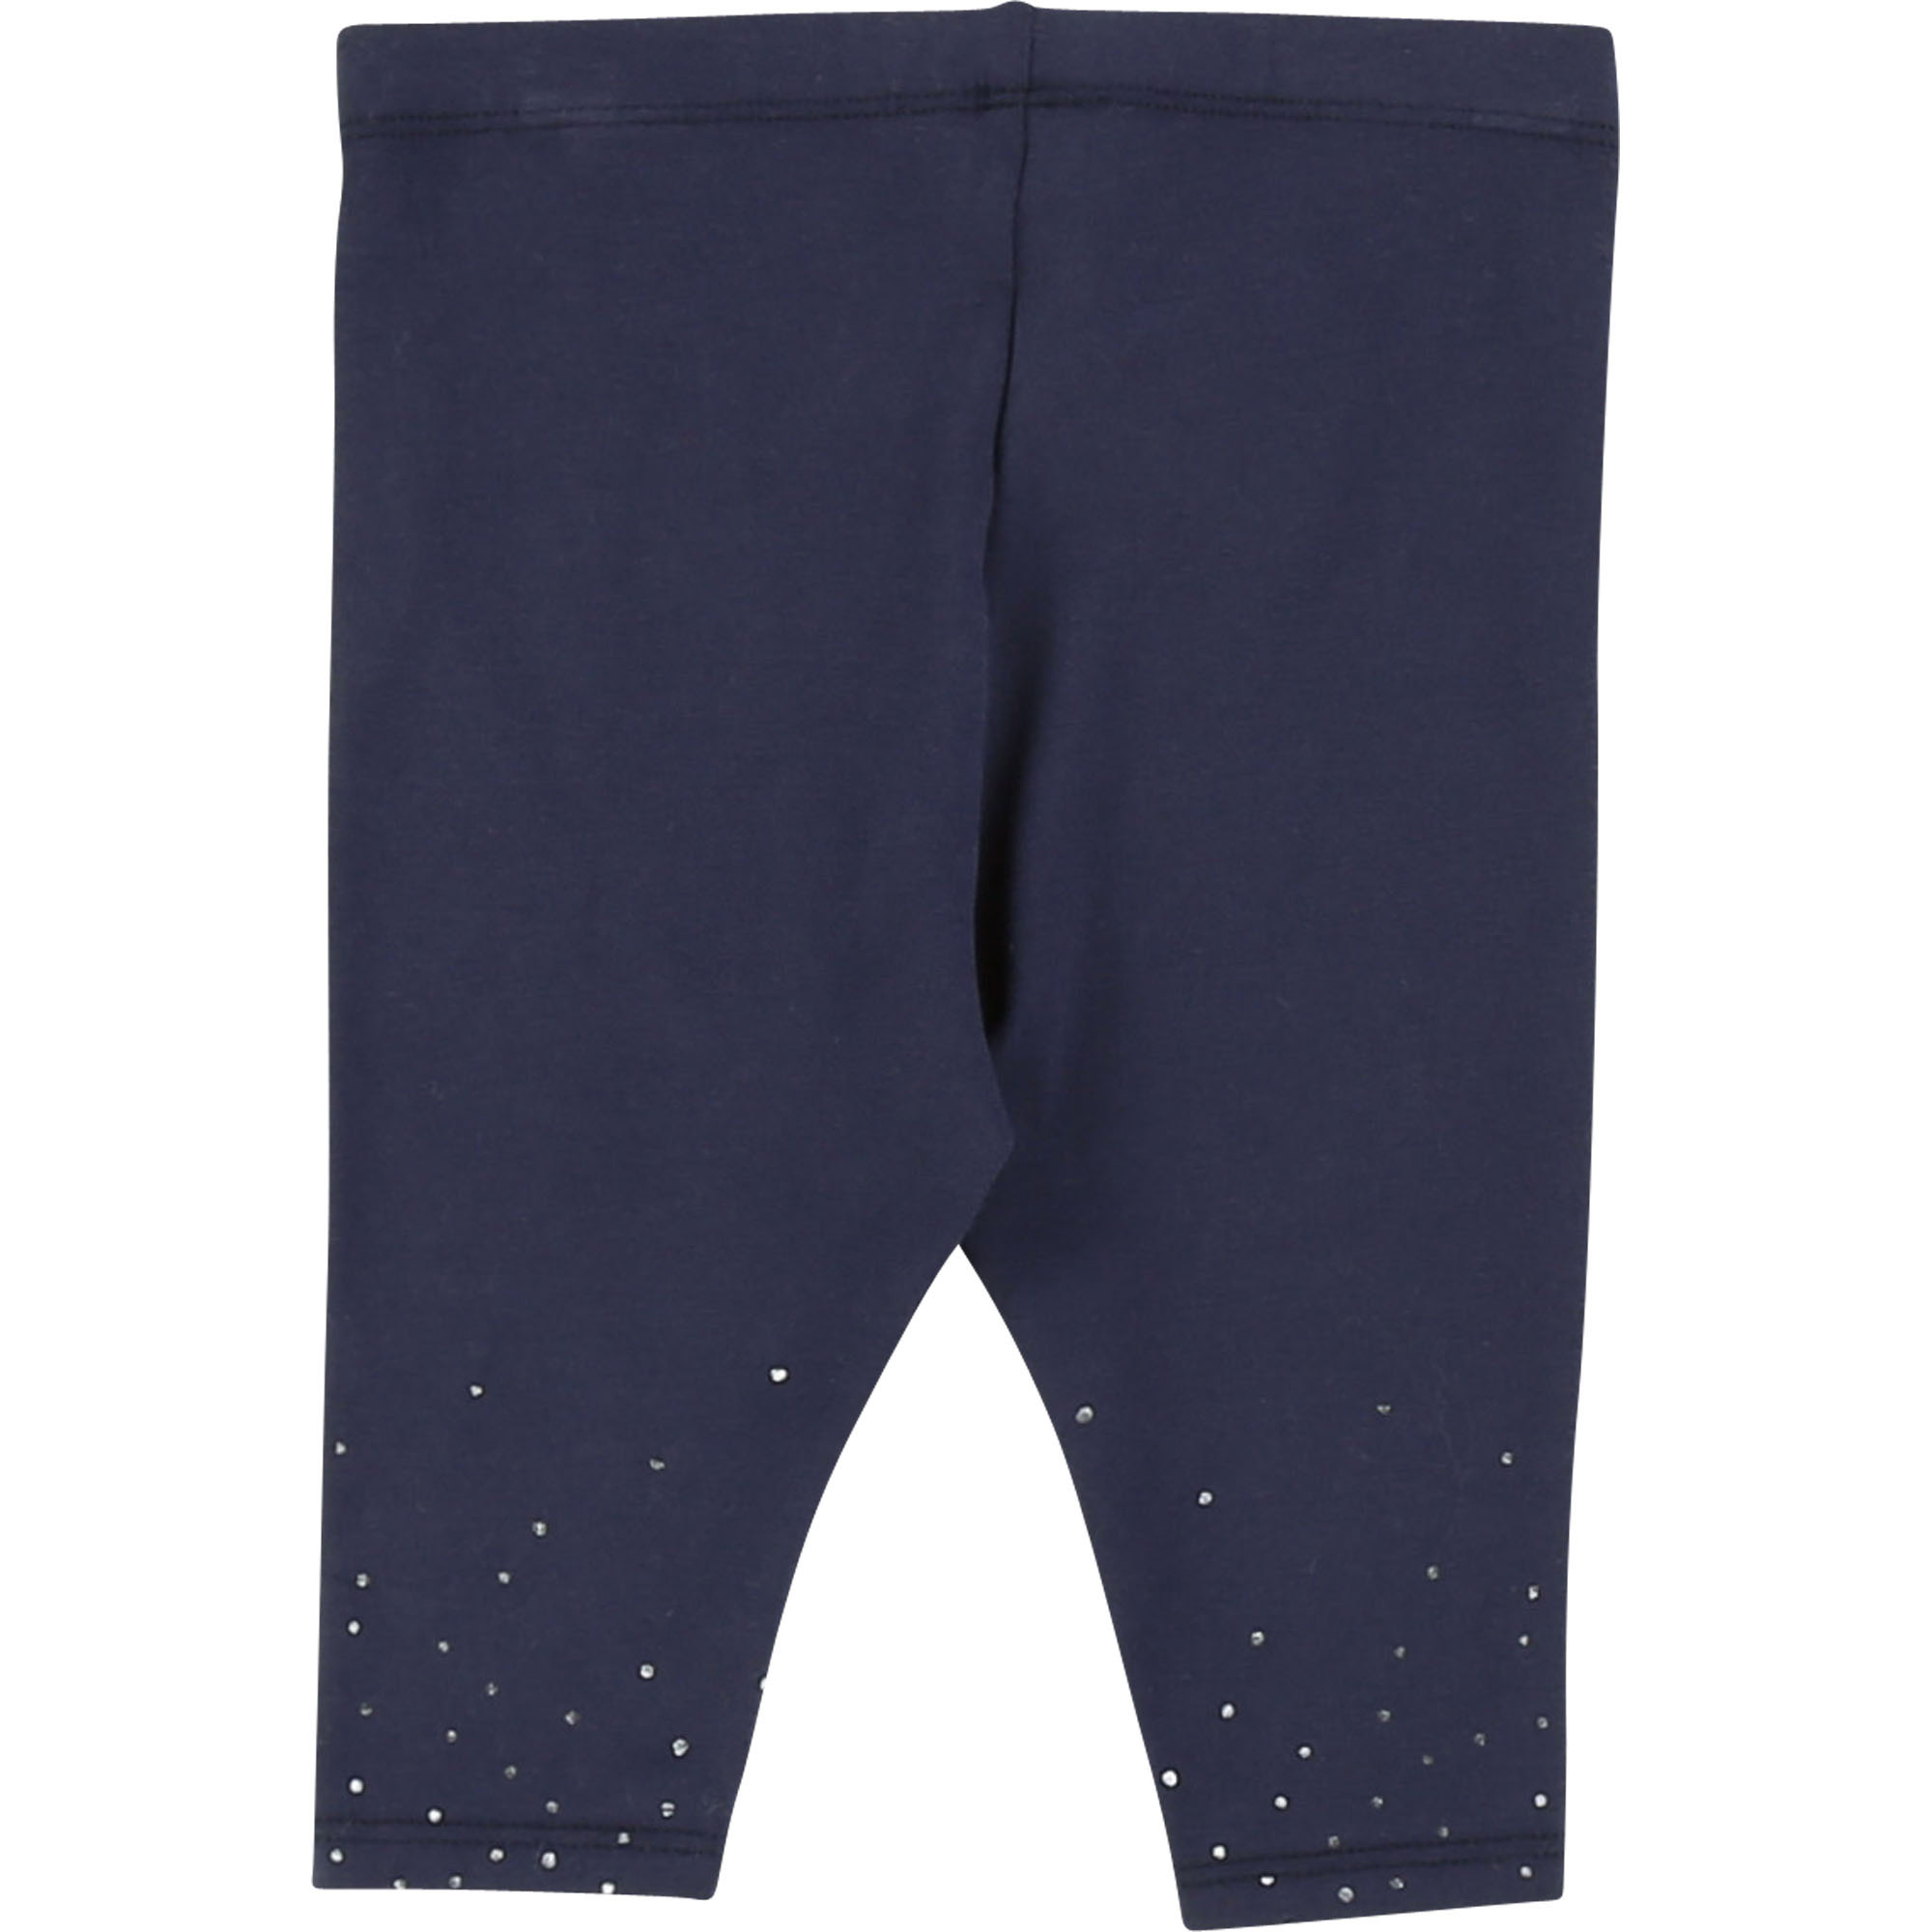 LEGGINGS CARREMENT BEAU Per BAMBINA